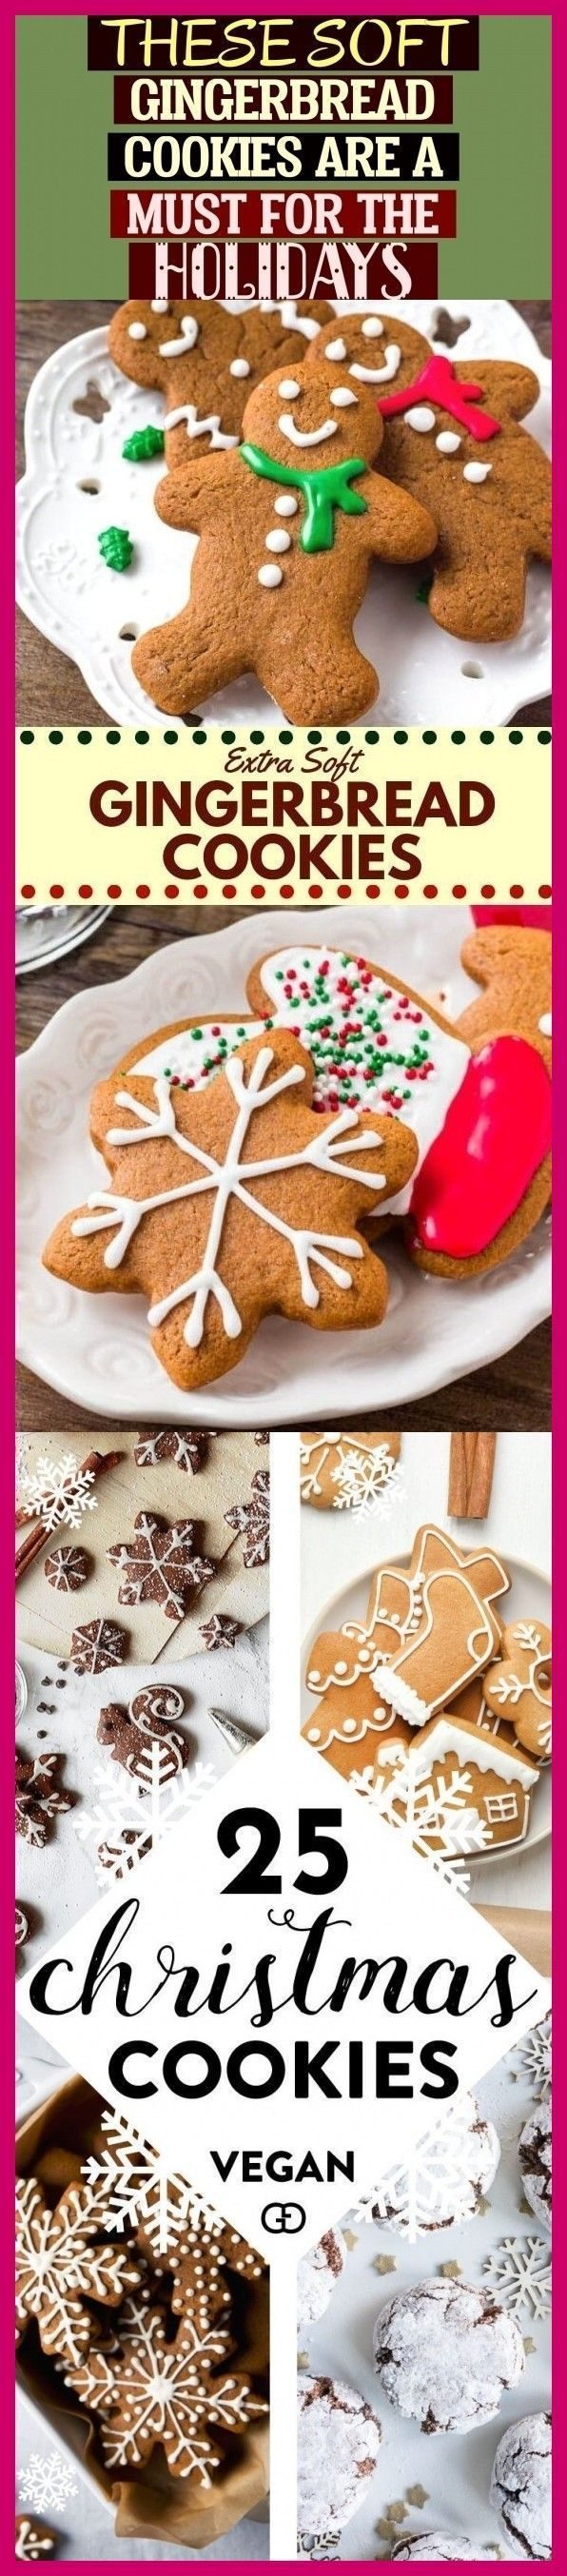 These Soft Gingerbread Cookies Are A Must For The Holidays ! diese weichen lebkuchenplätzchen sind ein muss für die feiertage #gingerbread #gingerbreadmen #christmas #baking #cookiesalad These Soft Gingerbread Cookies Are A Must For The Holidays ! diese weichen lebkuchenplätzchen sind ein muss für die feiertage #gingerbread #gingerbreadmen #christmas #baking #sliceandbakecookieschristmas